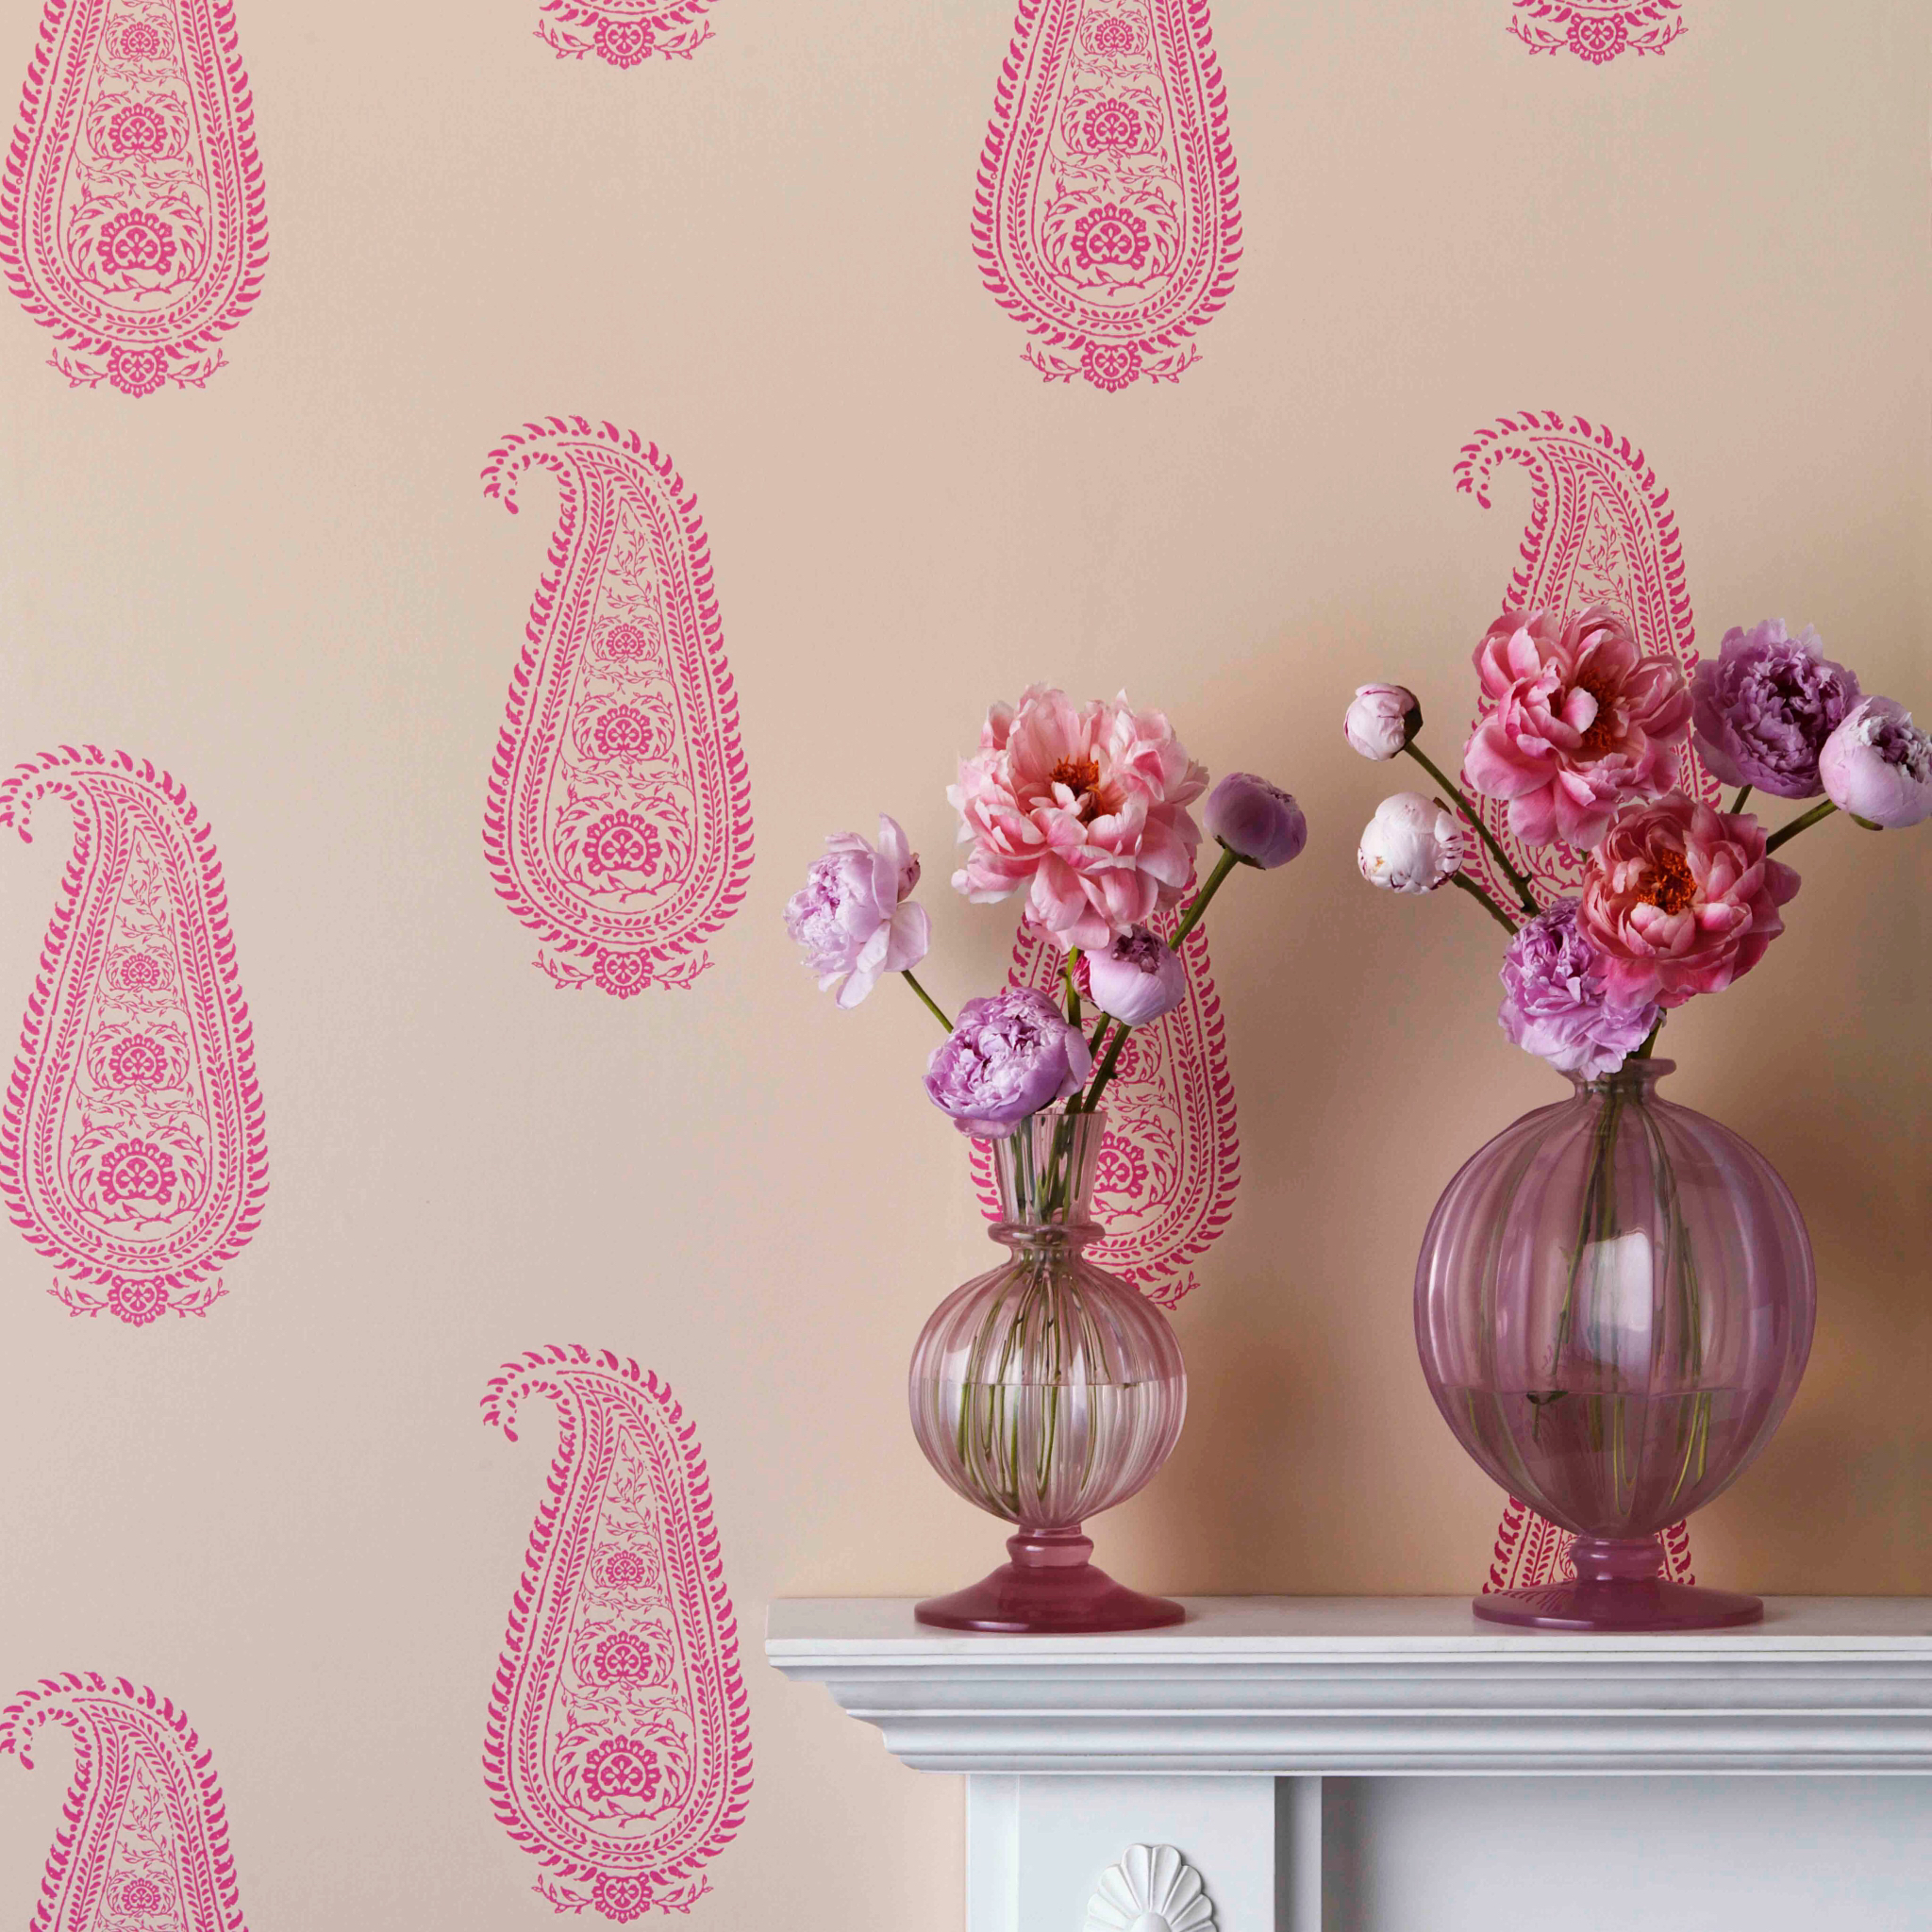 For-this-beautiful-range-of-handcrafted-in-collaboration-with-collettedinnigan-Porters-wallpaper-wp5007655